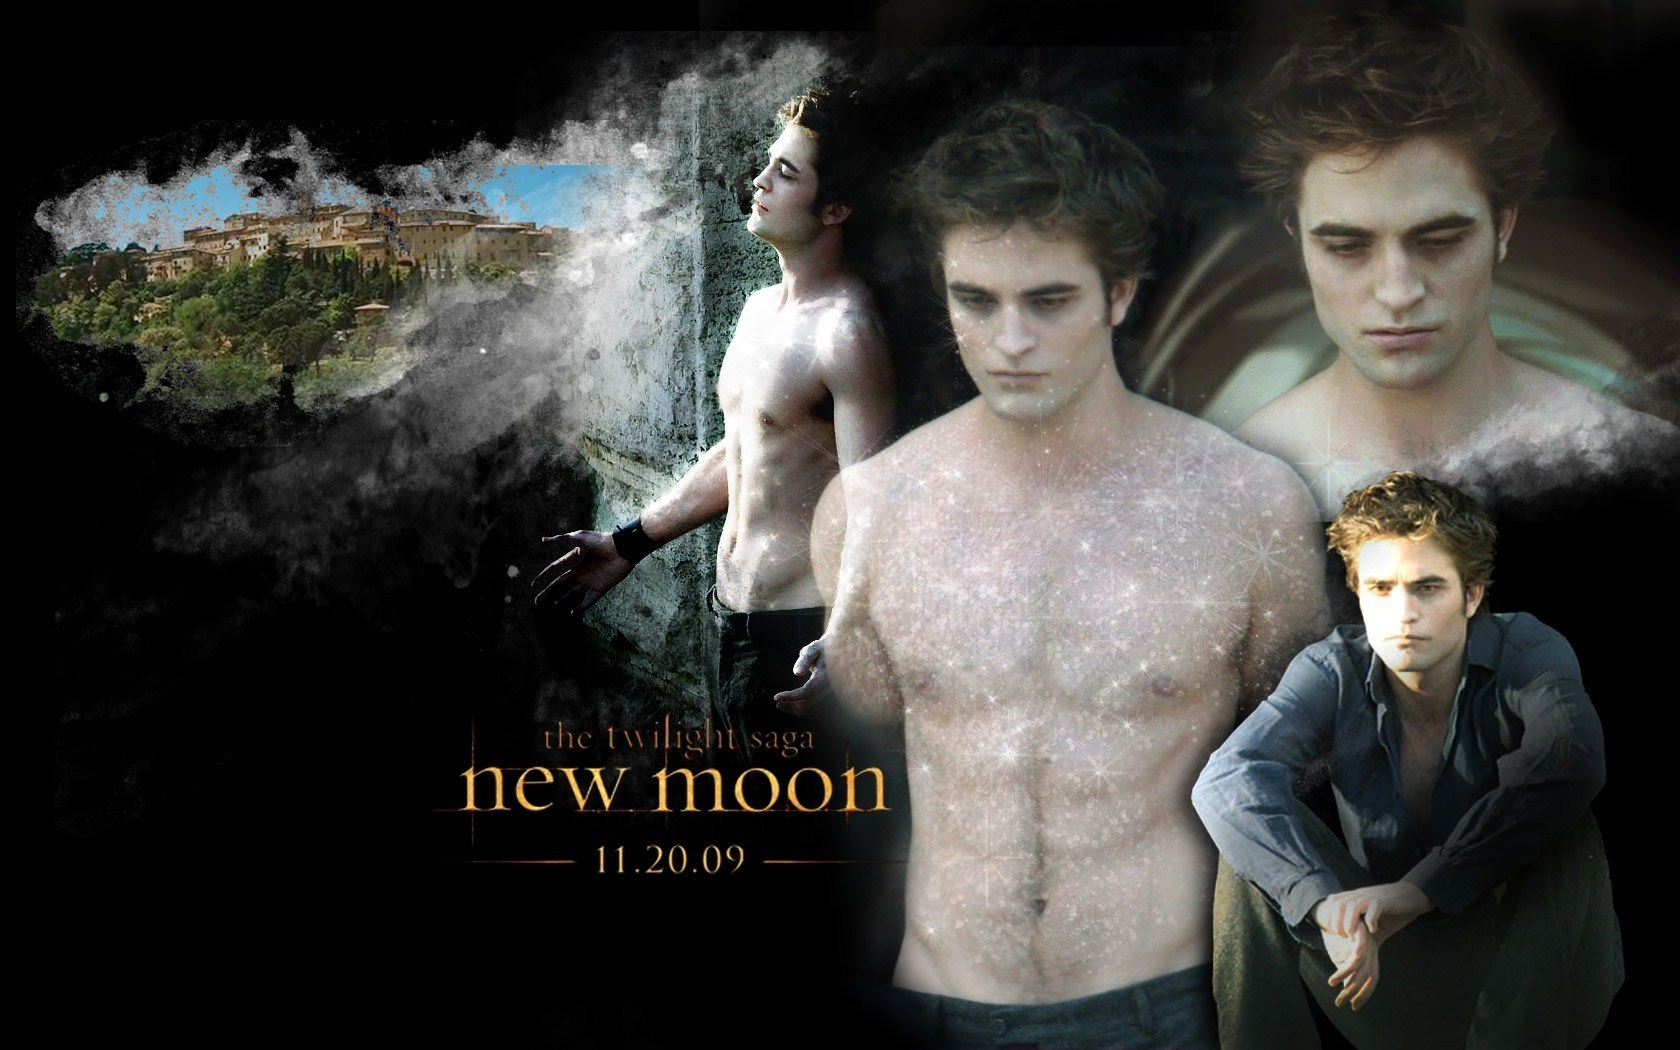 Edward Cullen New Moon Twilight Series Wallpaper